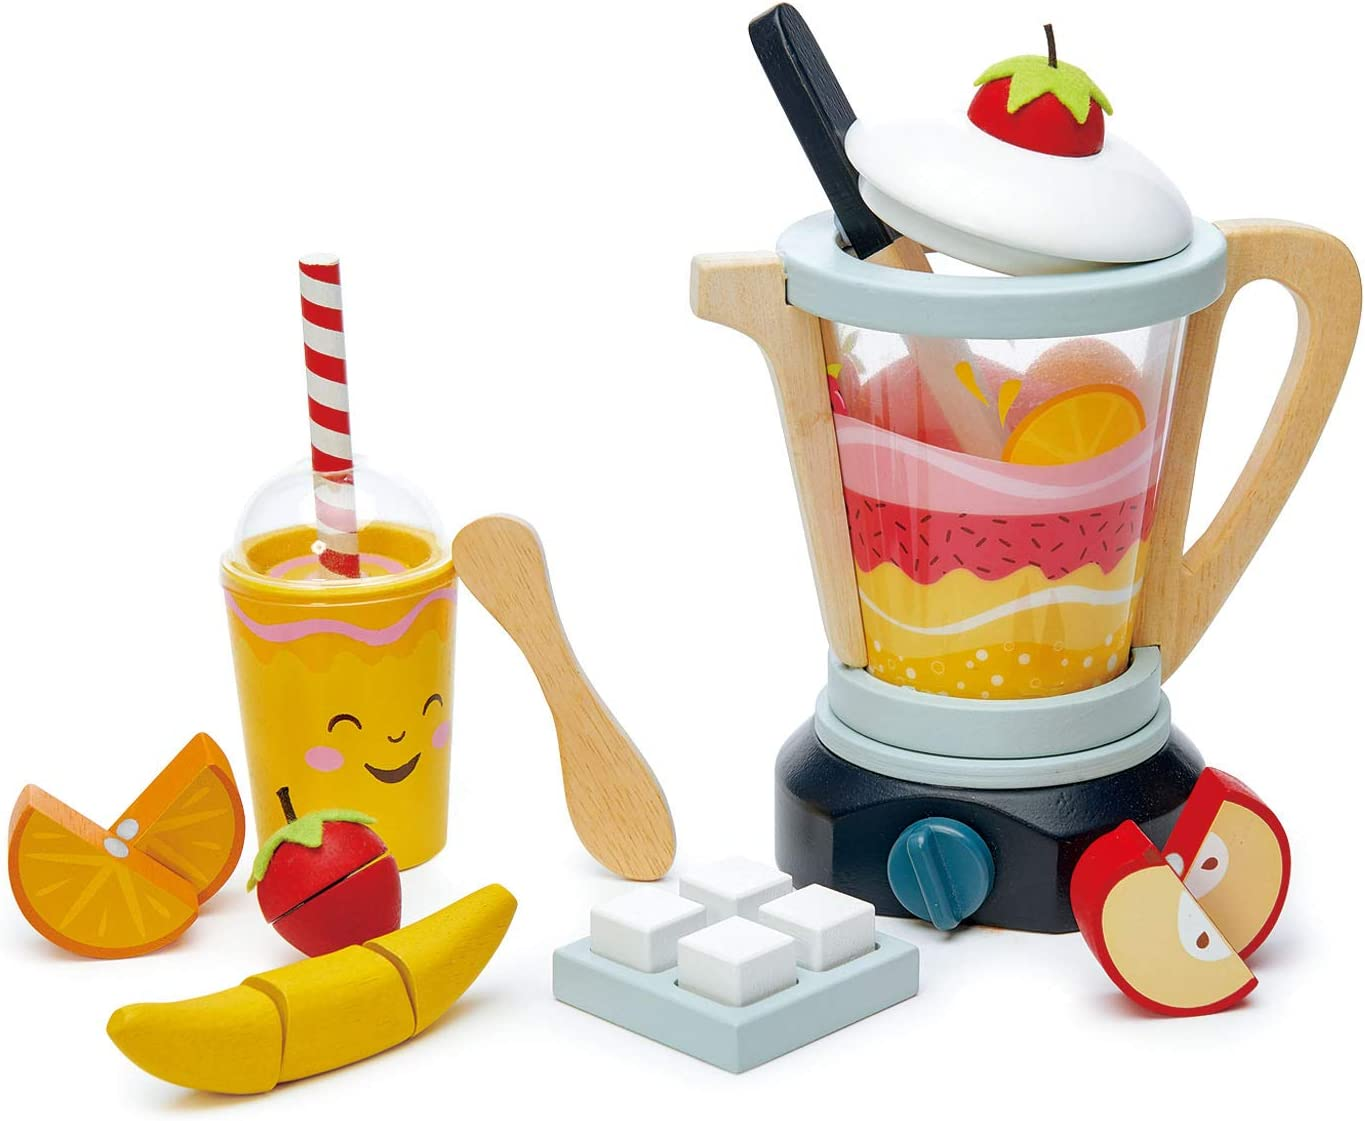 Tender Leaf Toys Mini Chef Fruity Smoothie Blender - Realistic Features for Pretend Cooking - Social, Creative, and Imaginative Development – Learning Role Play to Make a Healthy Shake – Ages 3 years+